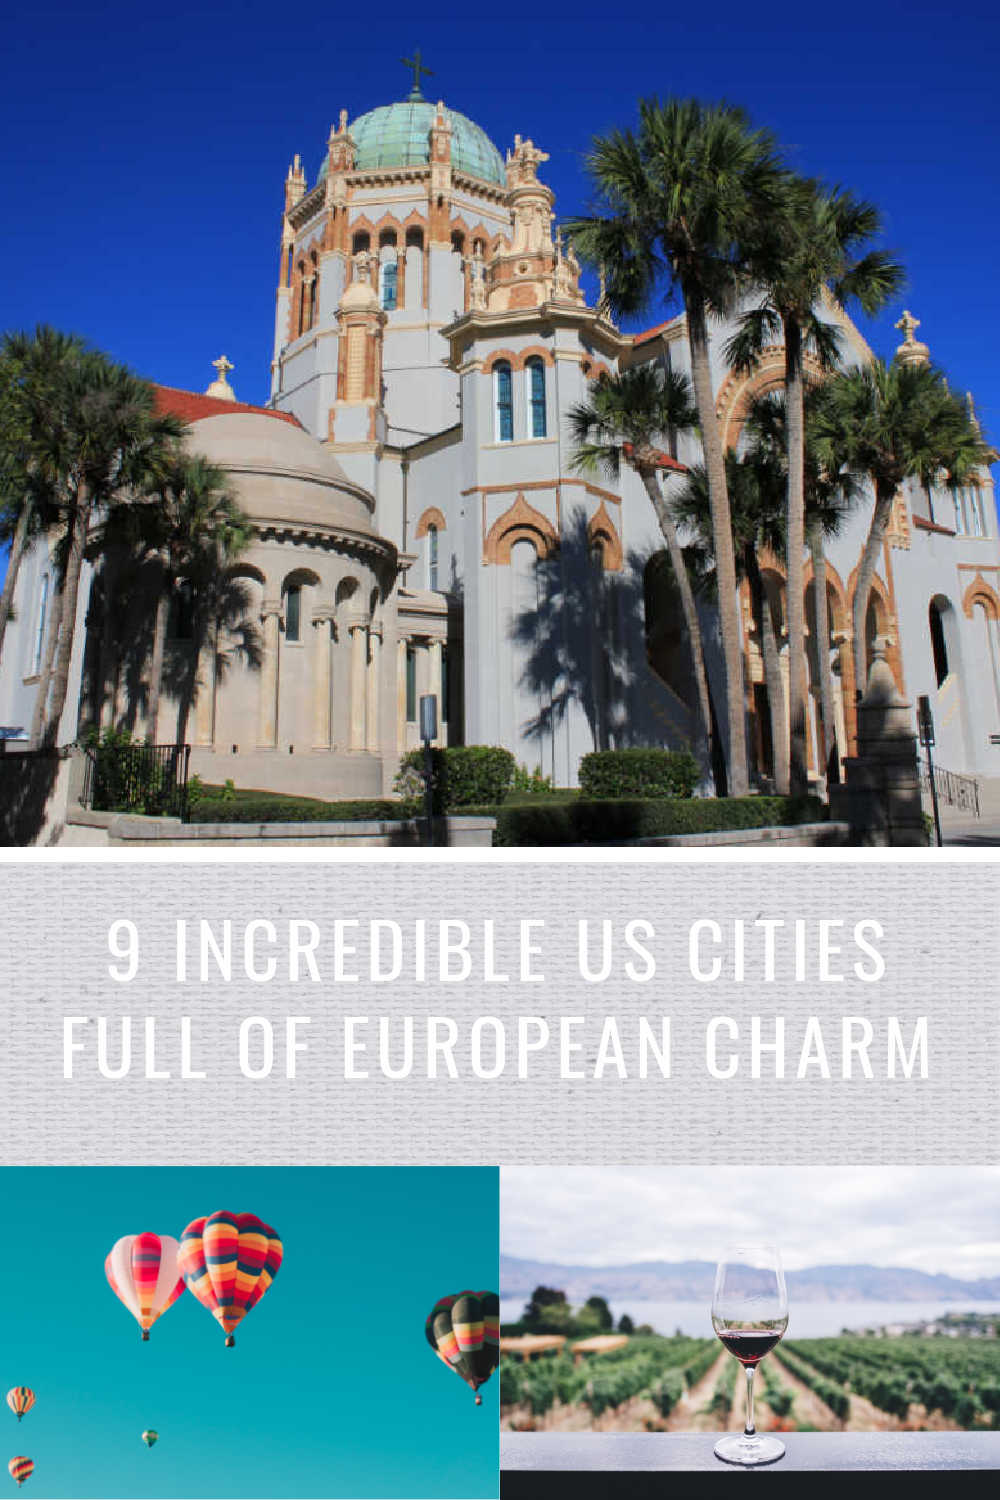 9 US CITIES FULL OF EUROPEAN CHARM